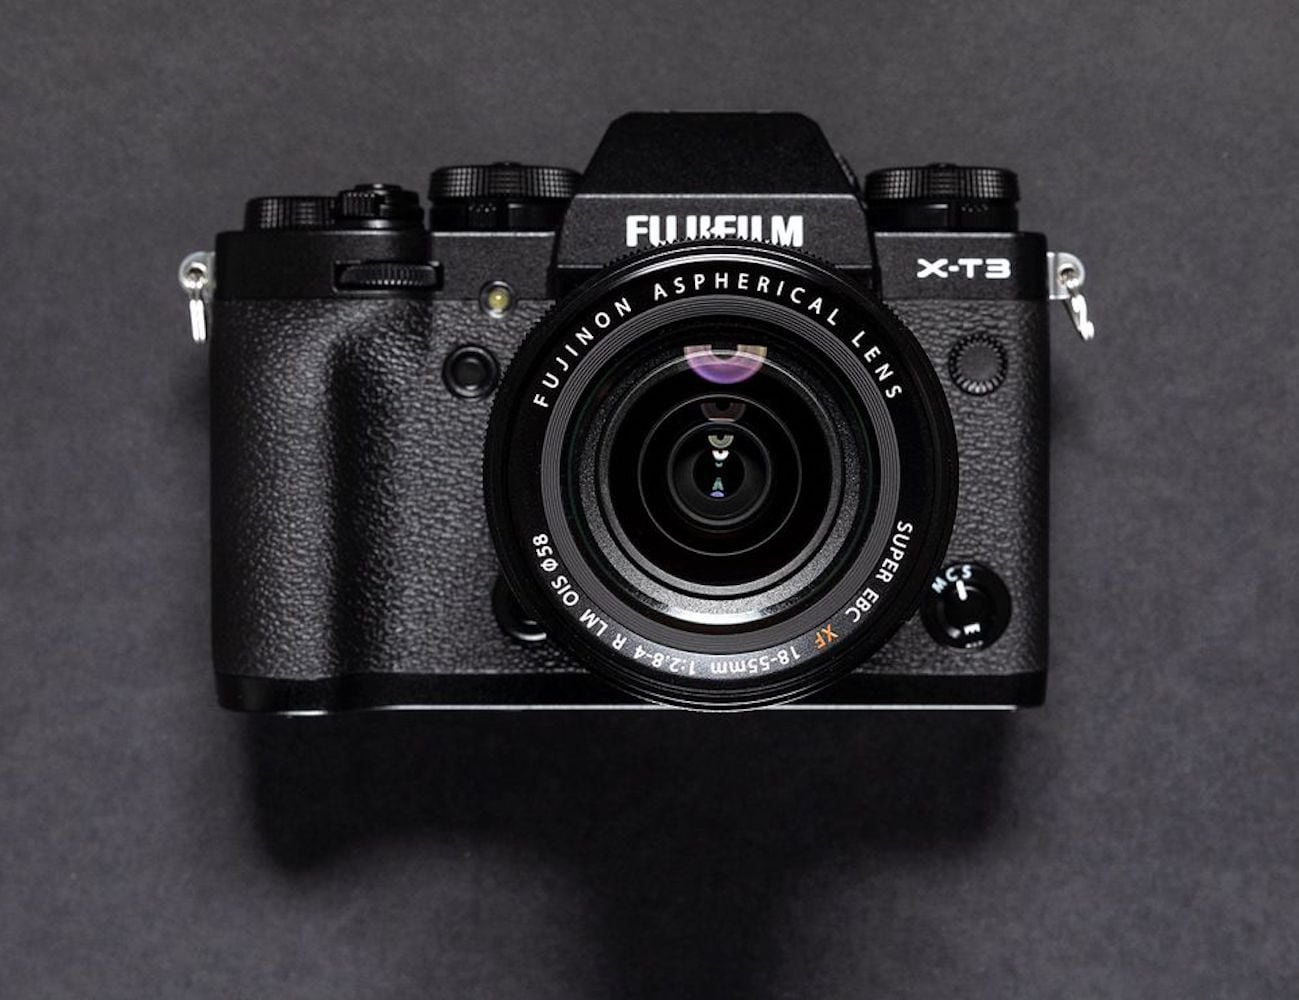 Fujifilm X-T3 APS-C Mirrorless Digital Camera is ideal for photography buffs